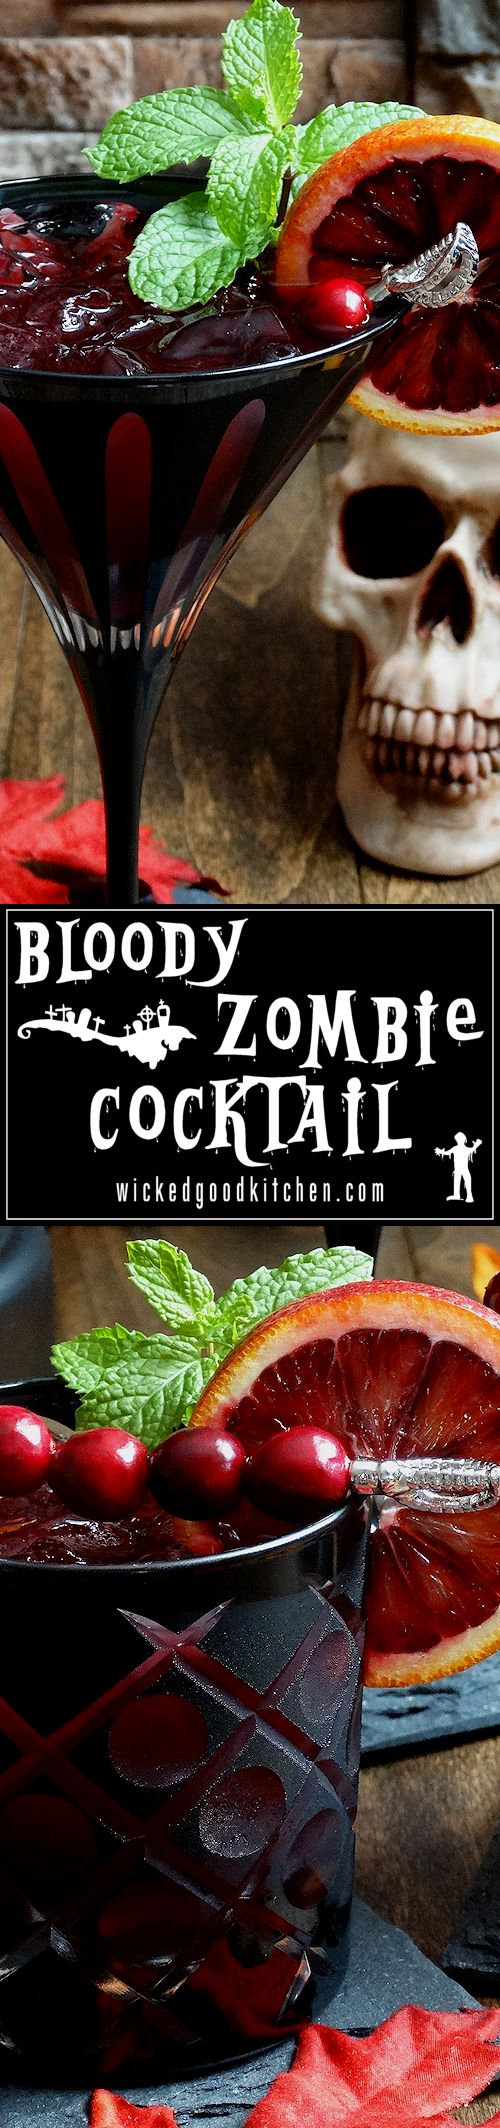 It's a Graveyard Smash! ~ Created from the classic tropical Zombie Cocktail but with an autumnal and bloody twist. Blood orange, cranberry and pomegranate juices along with blood orange liqueur make for a euphoric rum sip. Your party guests will rave!   holiday cocktail recipe